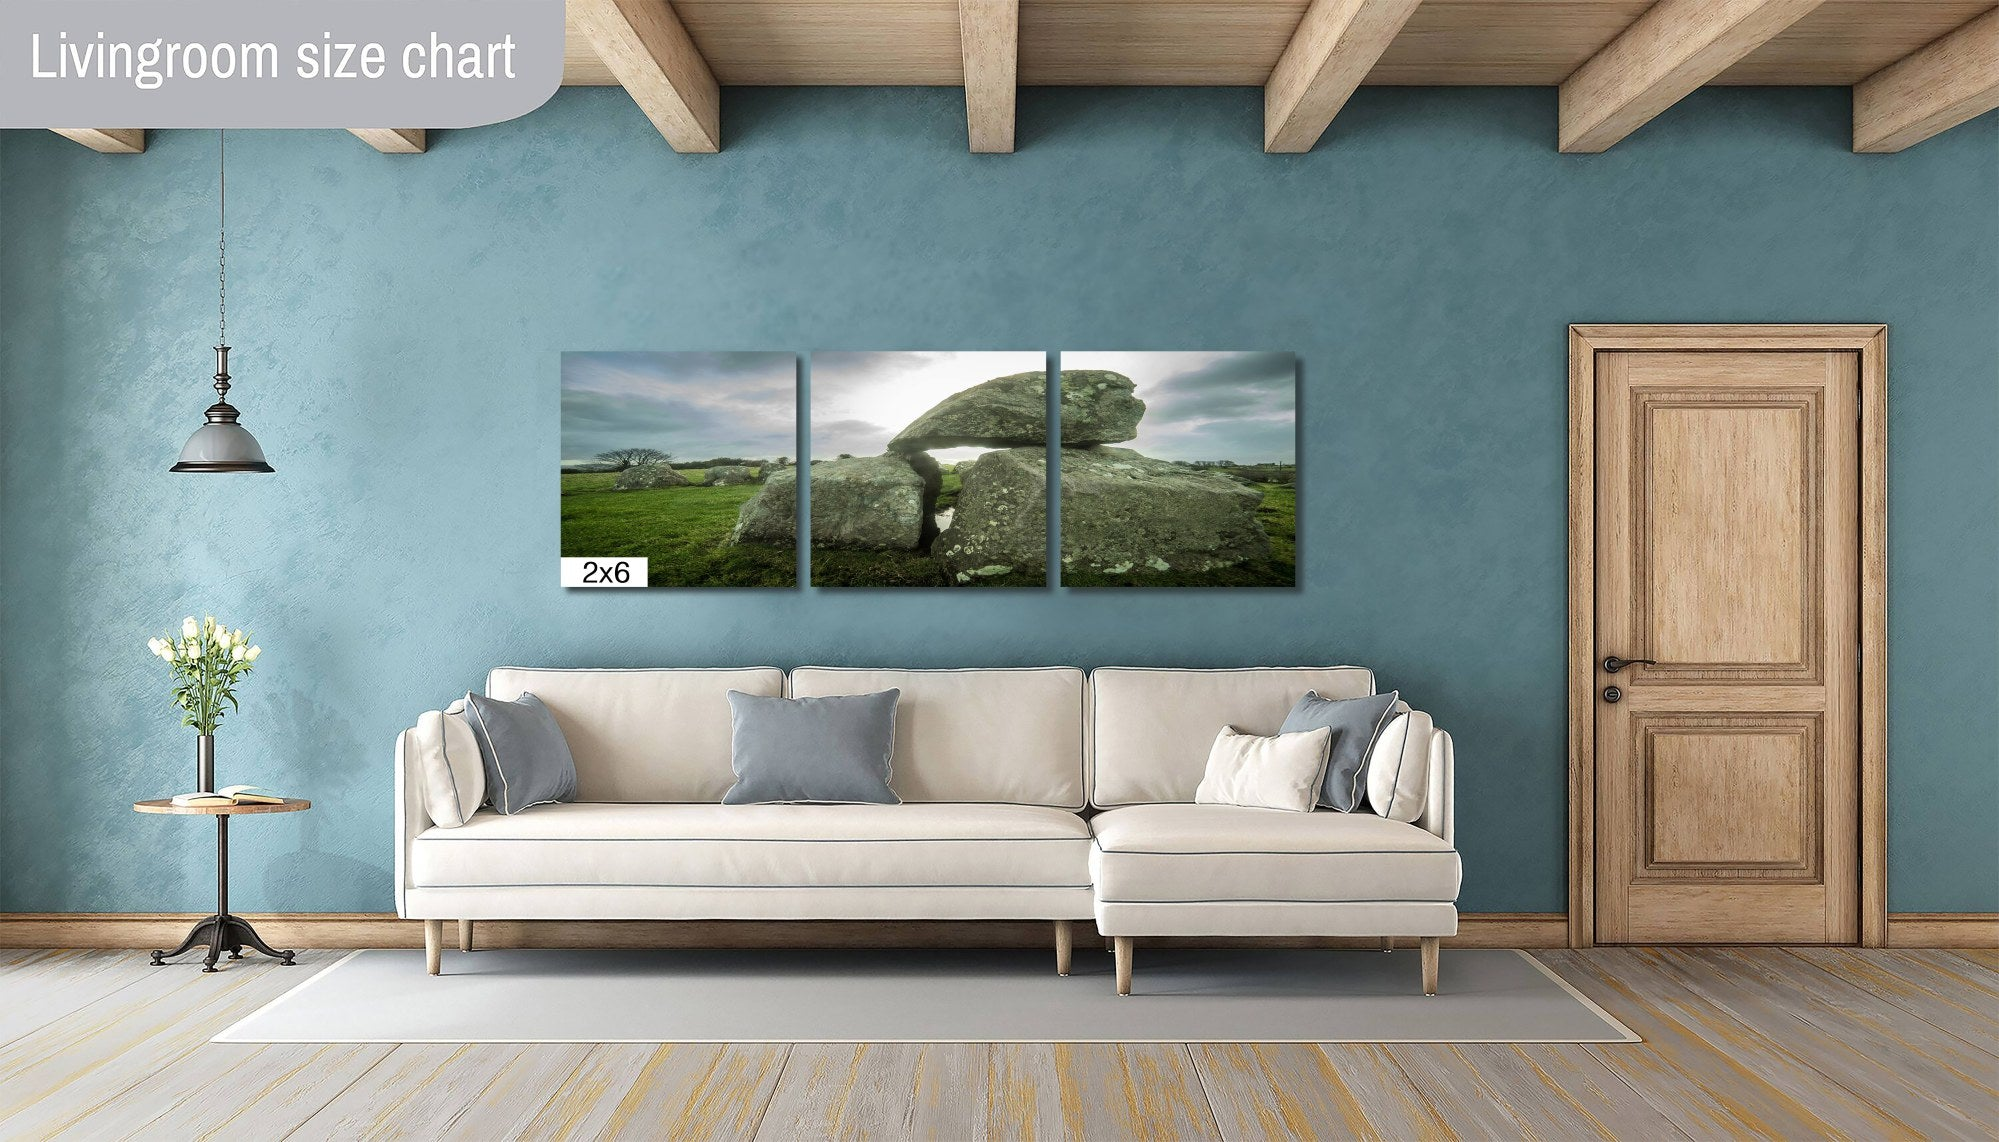 Carrowmore County Sligo Ireland Megalith Skyline Canvas Photography Metal Print Wall Art Picture Home Decor Poster Landmark Bedroom